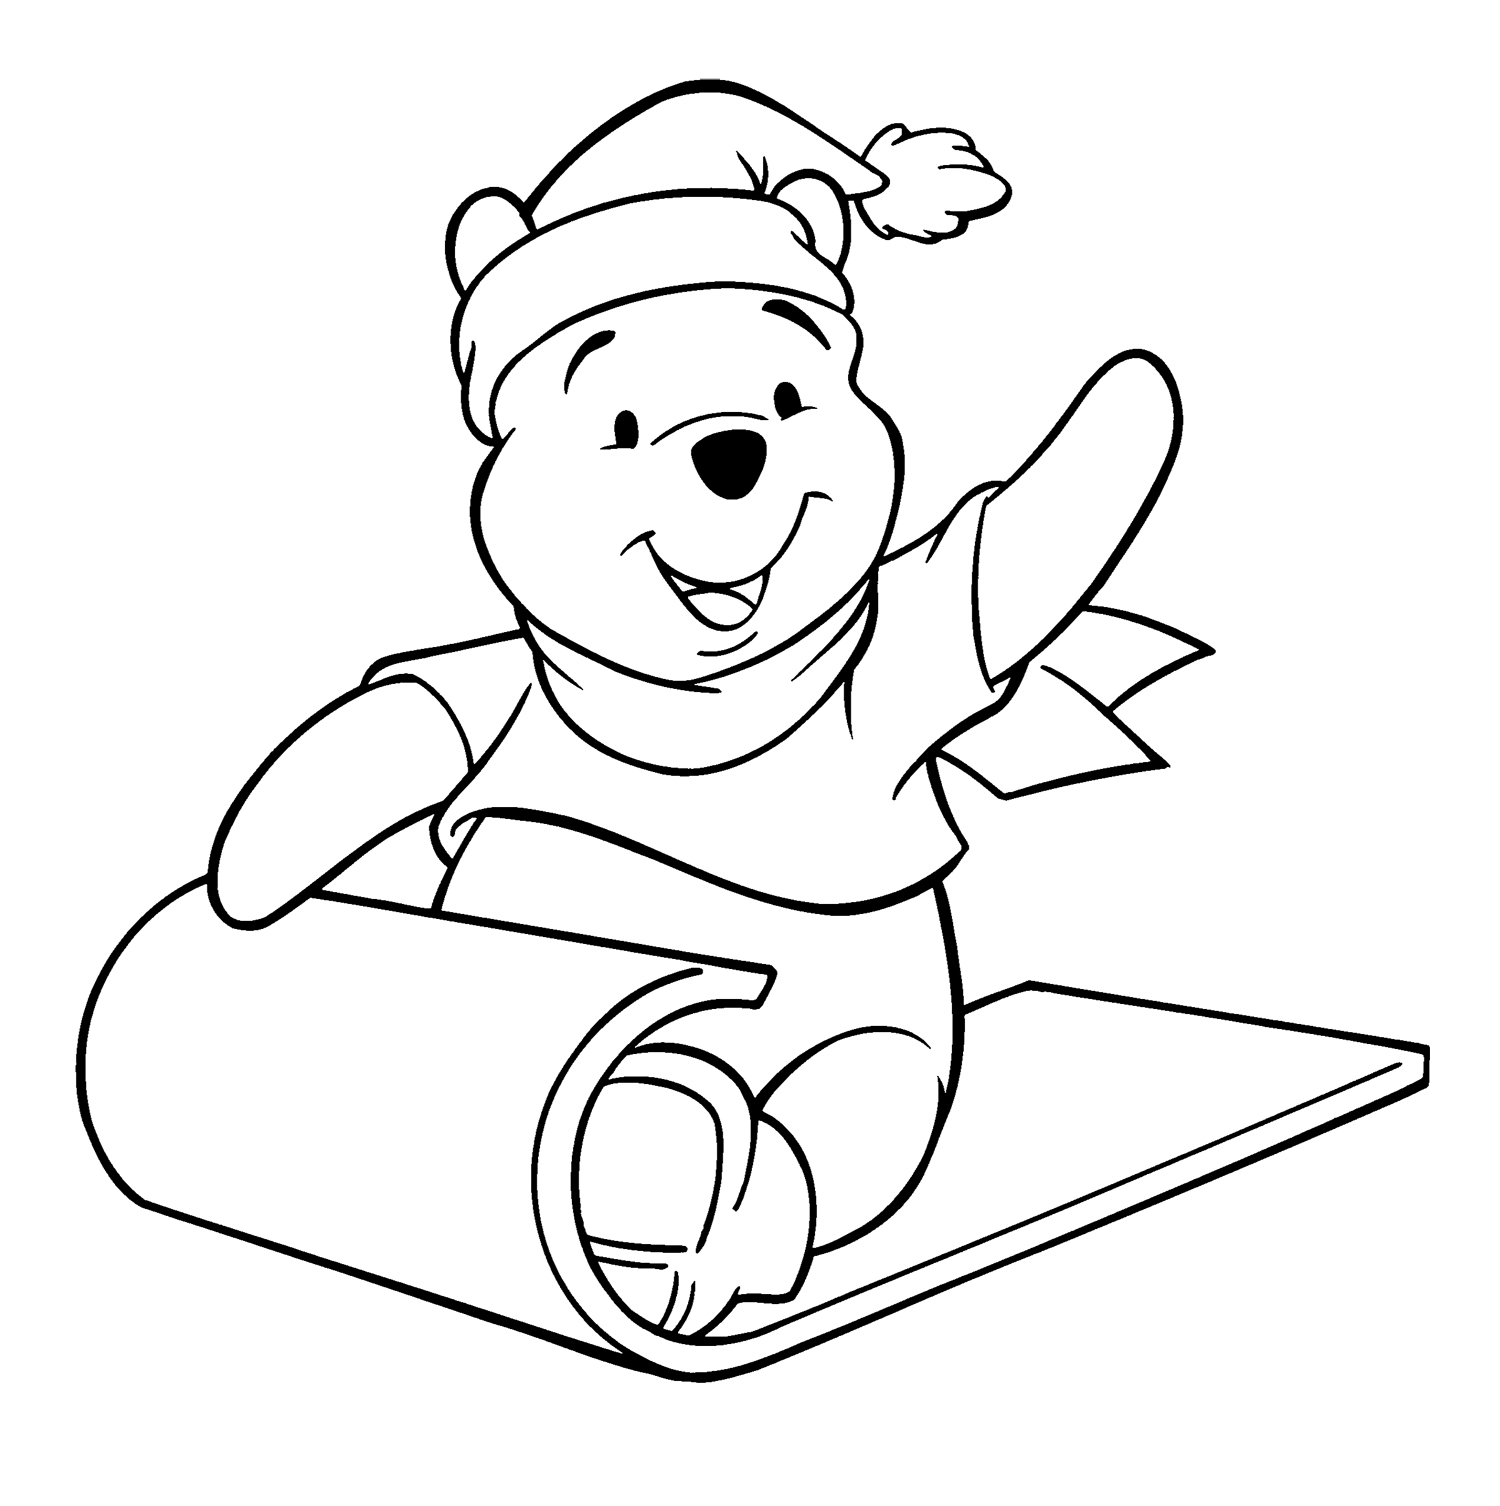 1500x1506 The Pooh Christmas Coloring Pages